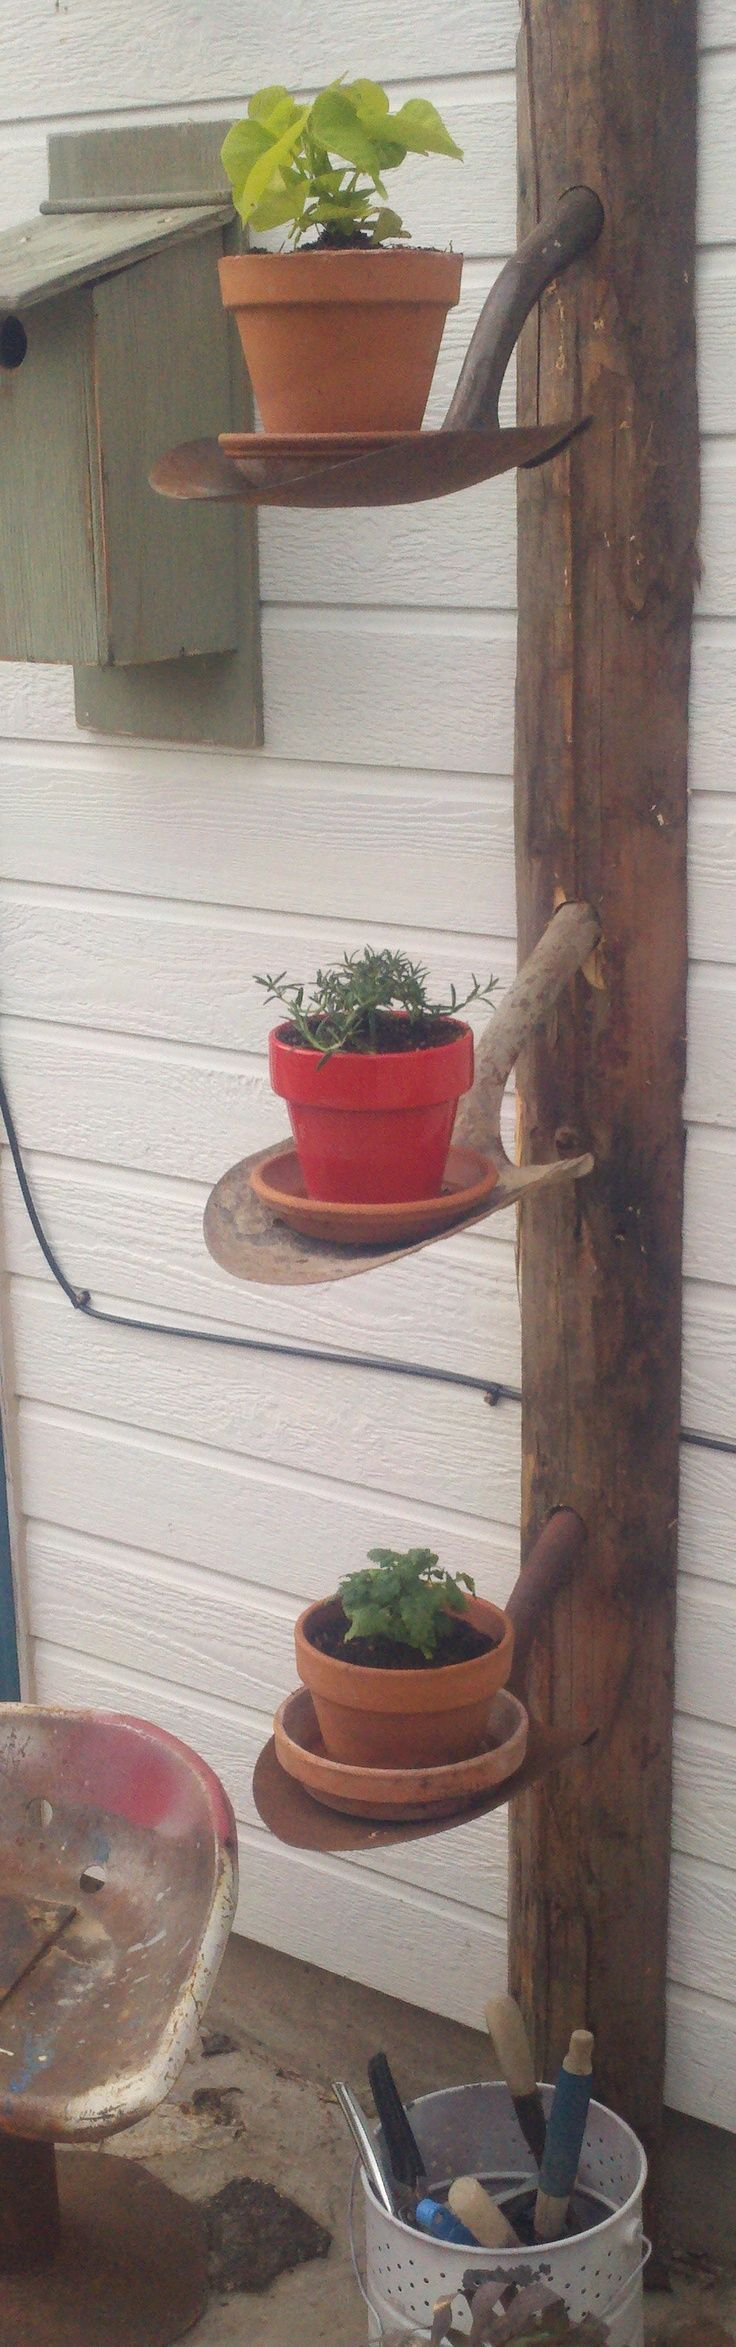 Old shovel head as a plant stand. 1 of 18 diy ideas / http://www.topdreamer.com/18-creative-and-useful-popular-diy-ideas/